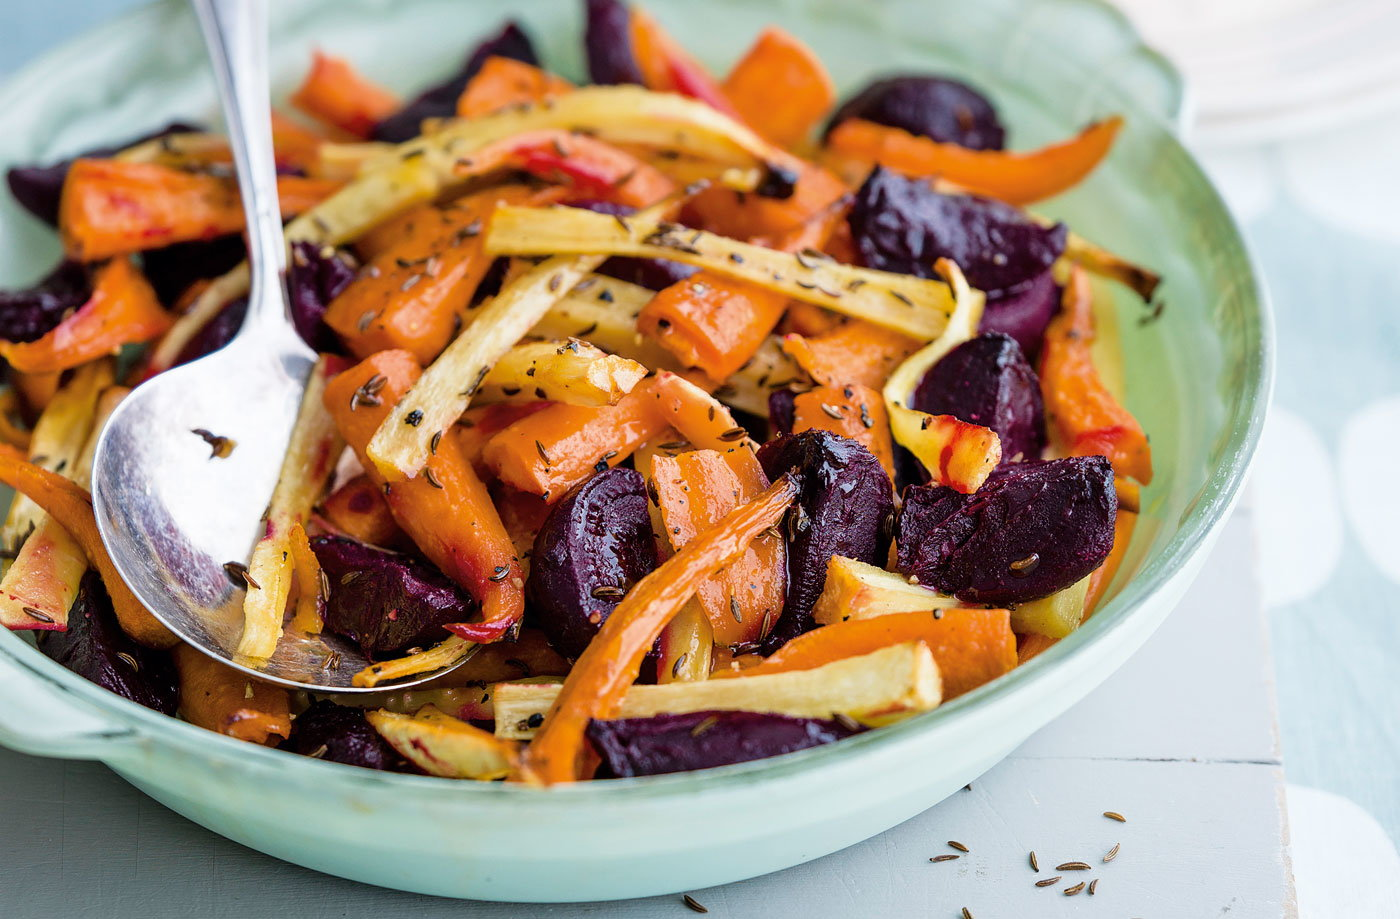 Roasted beetroot, parsnip and carrots recipe